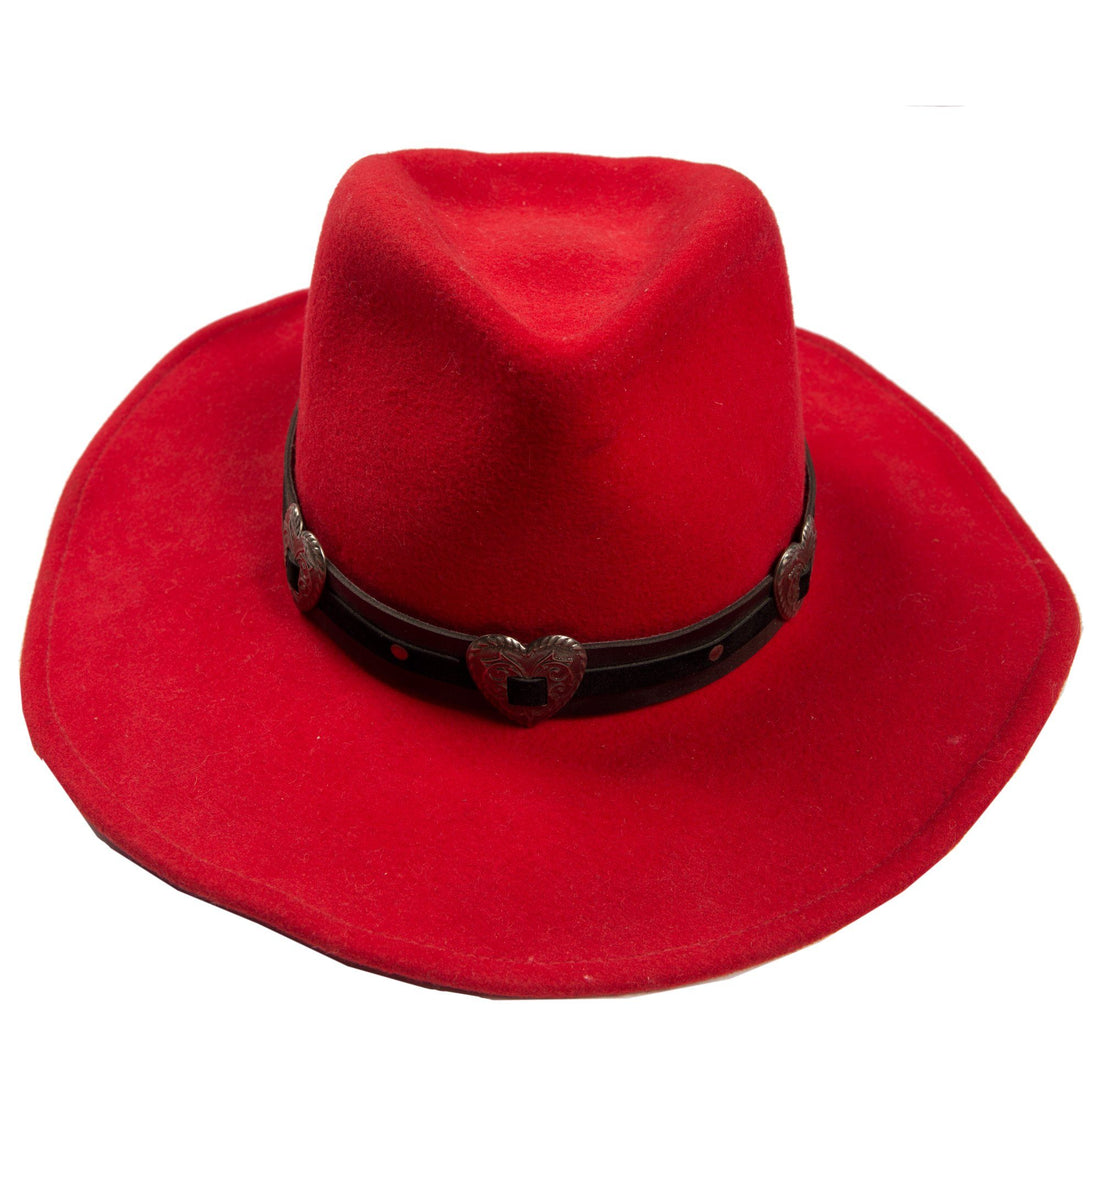 Vintage Red Wrangler Hat - Vintage - Iron and Resin